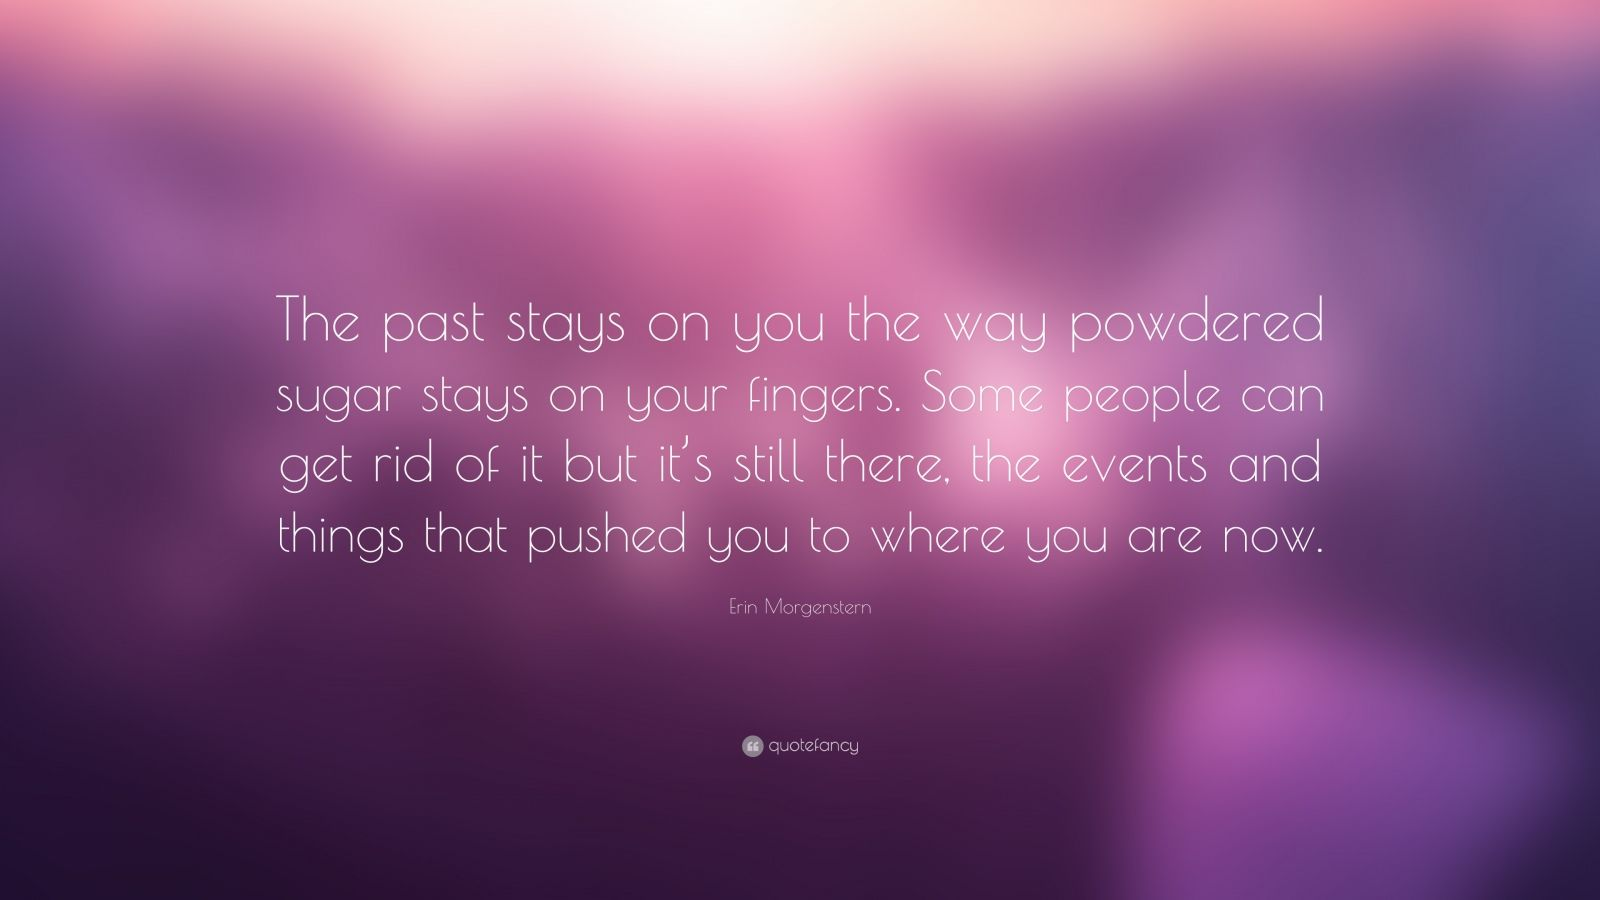 """Erin Morgenstern Quote: """"The past stays on you the way powdered sugar stays on your fingers. Some people can get rid of it but it's still there, the events and things that pushed you to where you are now."""""""